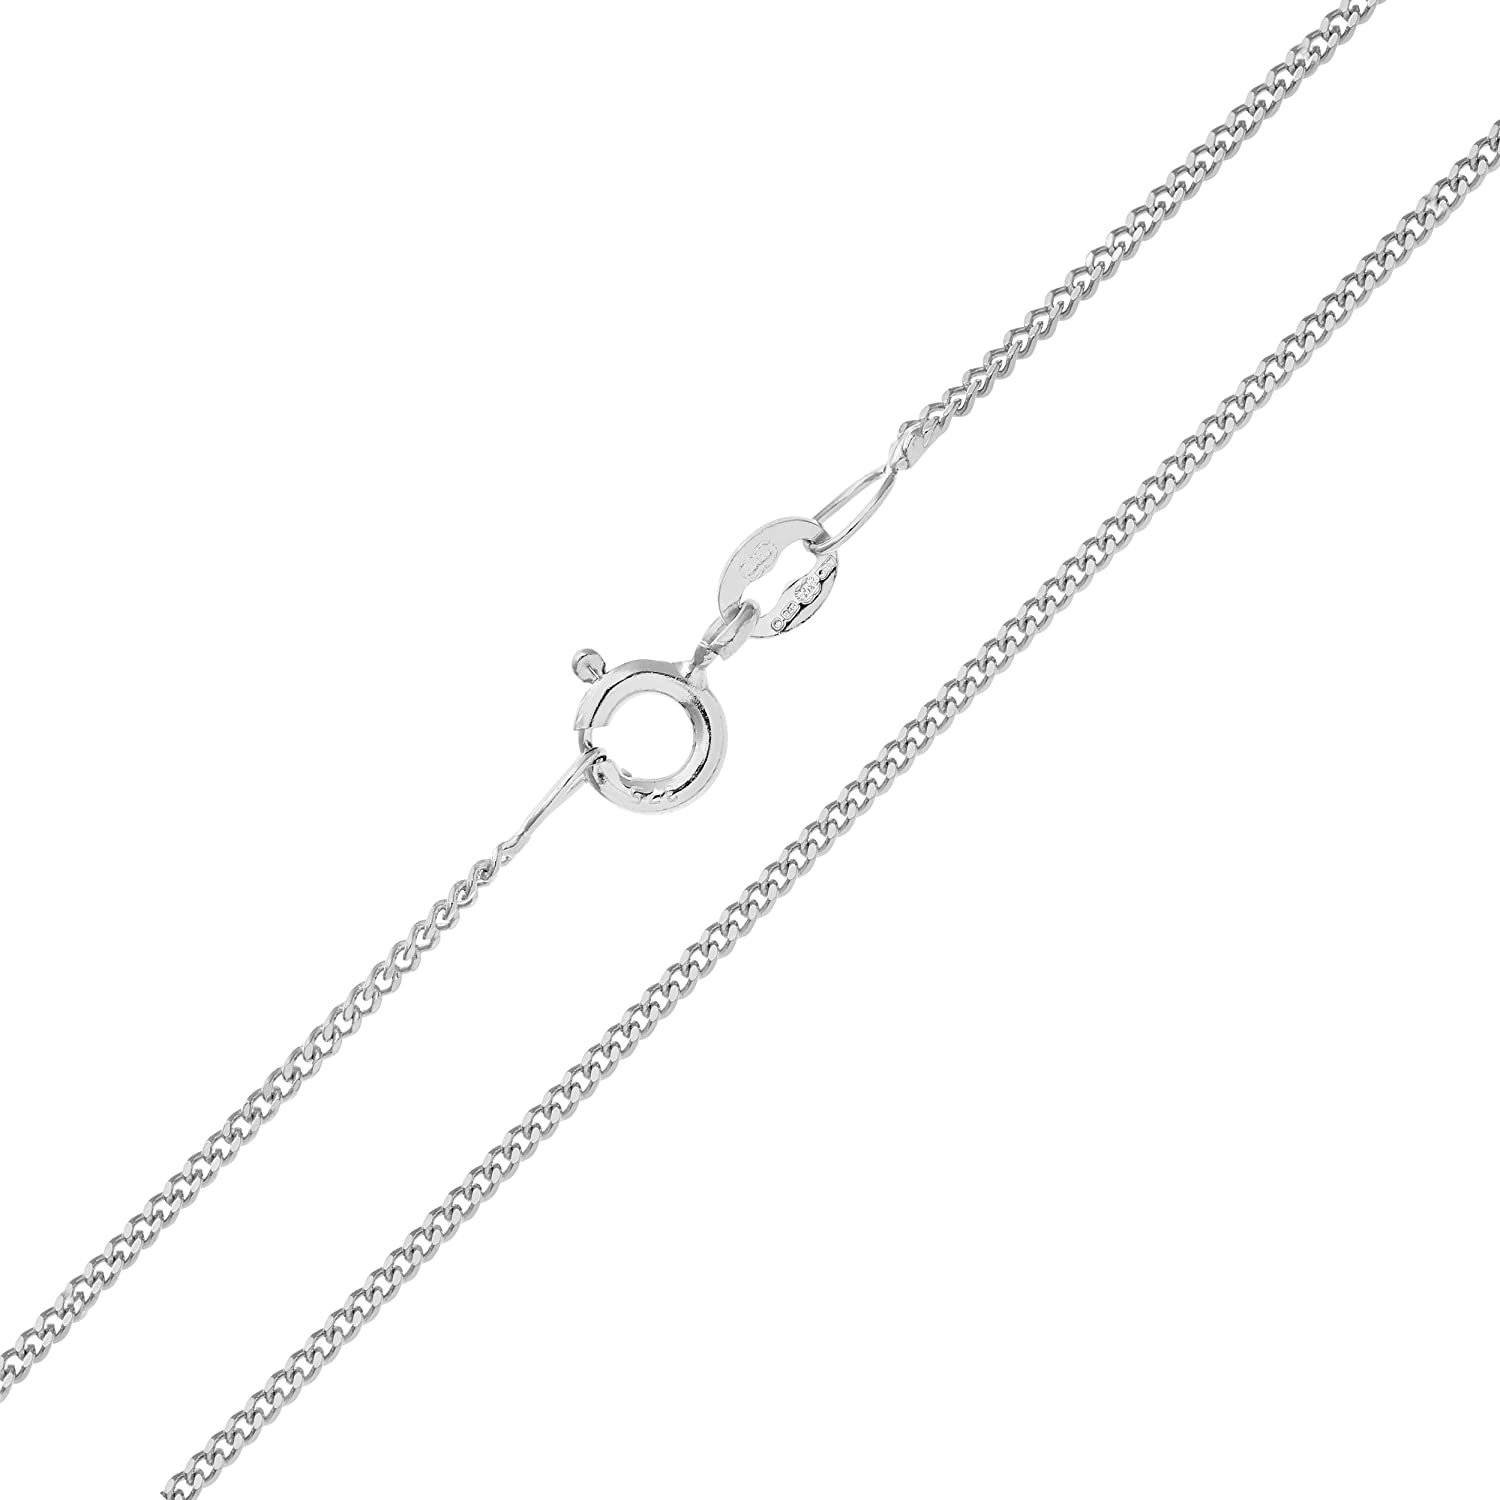 Citerna 9ct Gold 1.6g Curb Chain Necklace DLfax3K